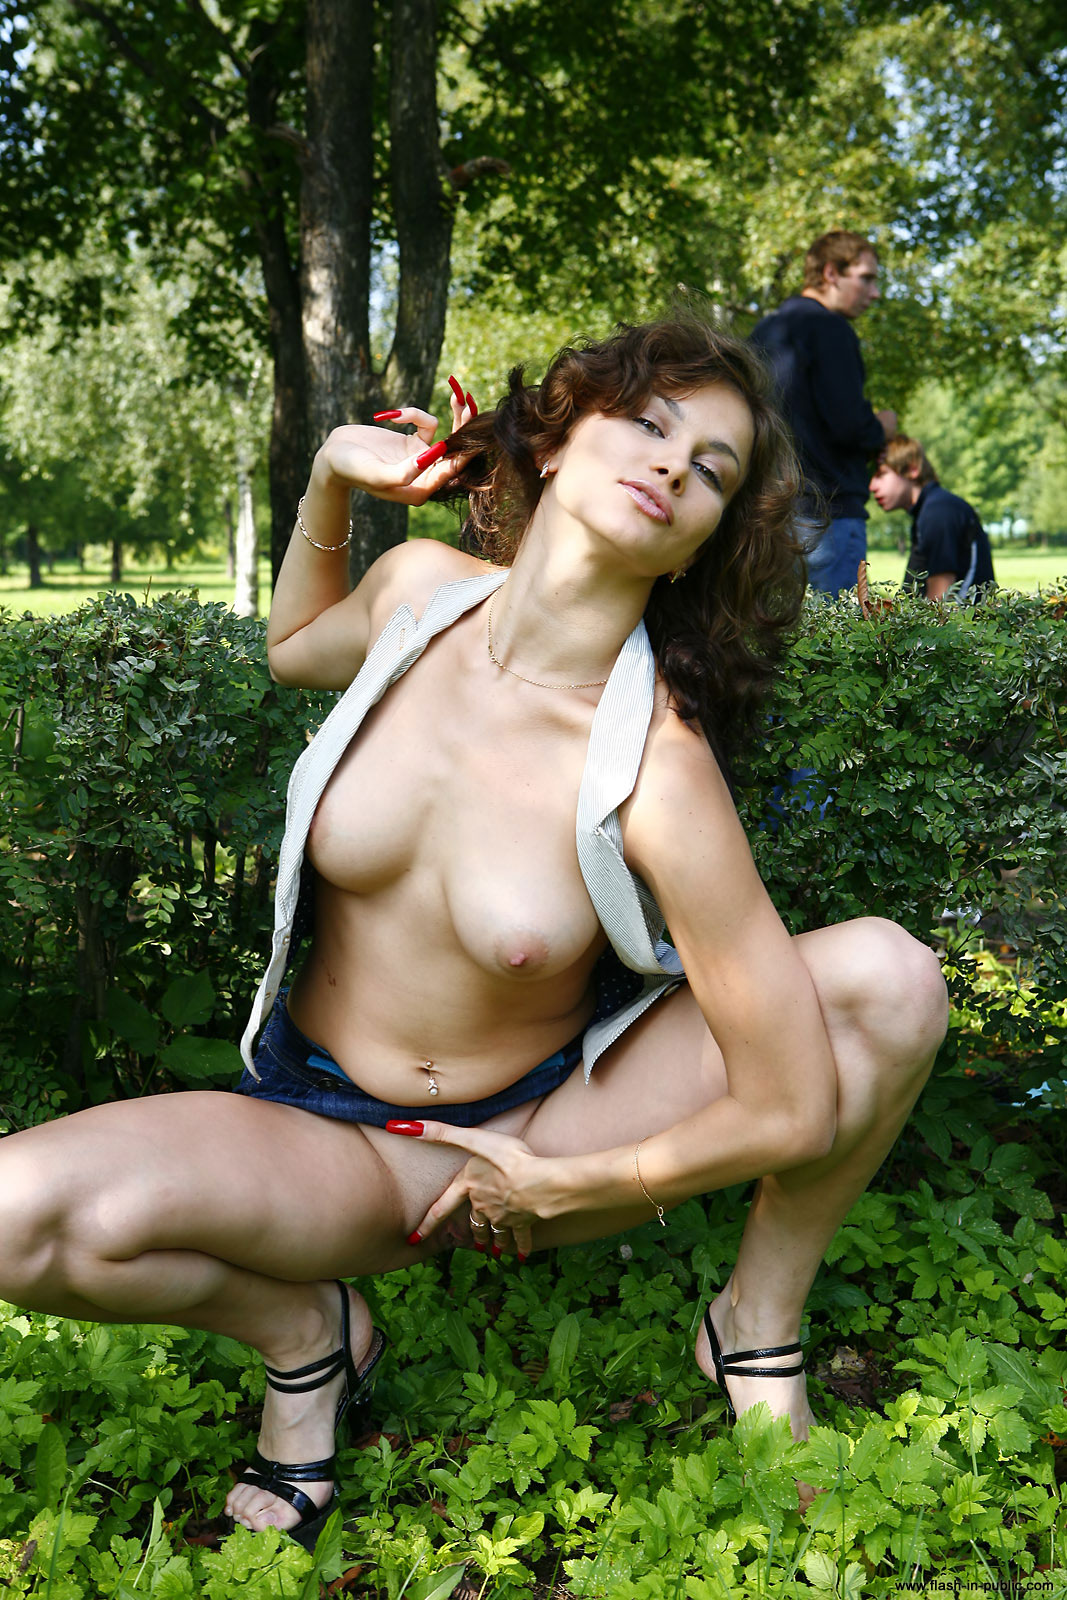 marianna-h-nude-park-flash-in-public-12